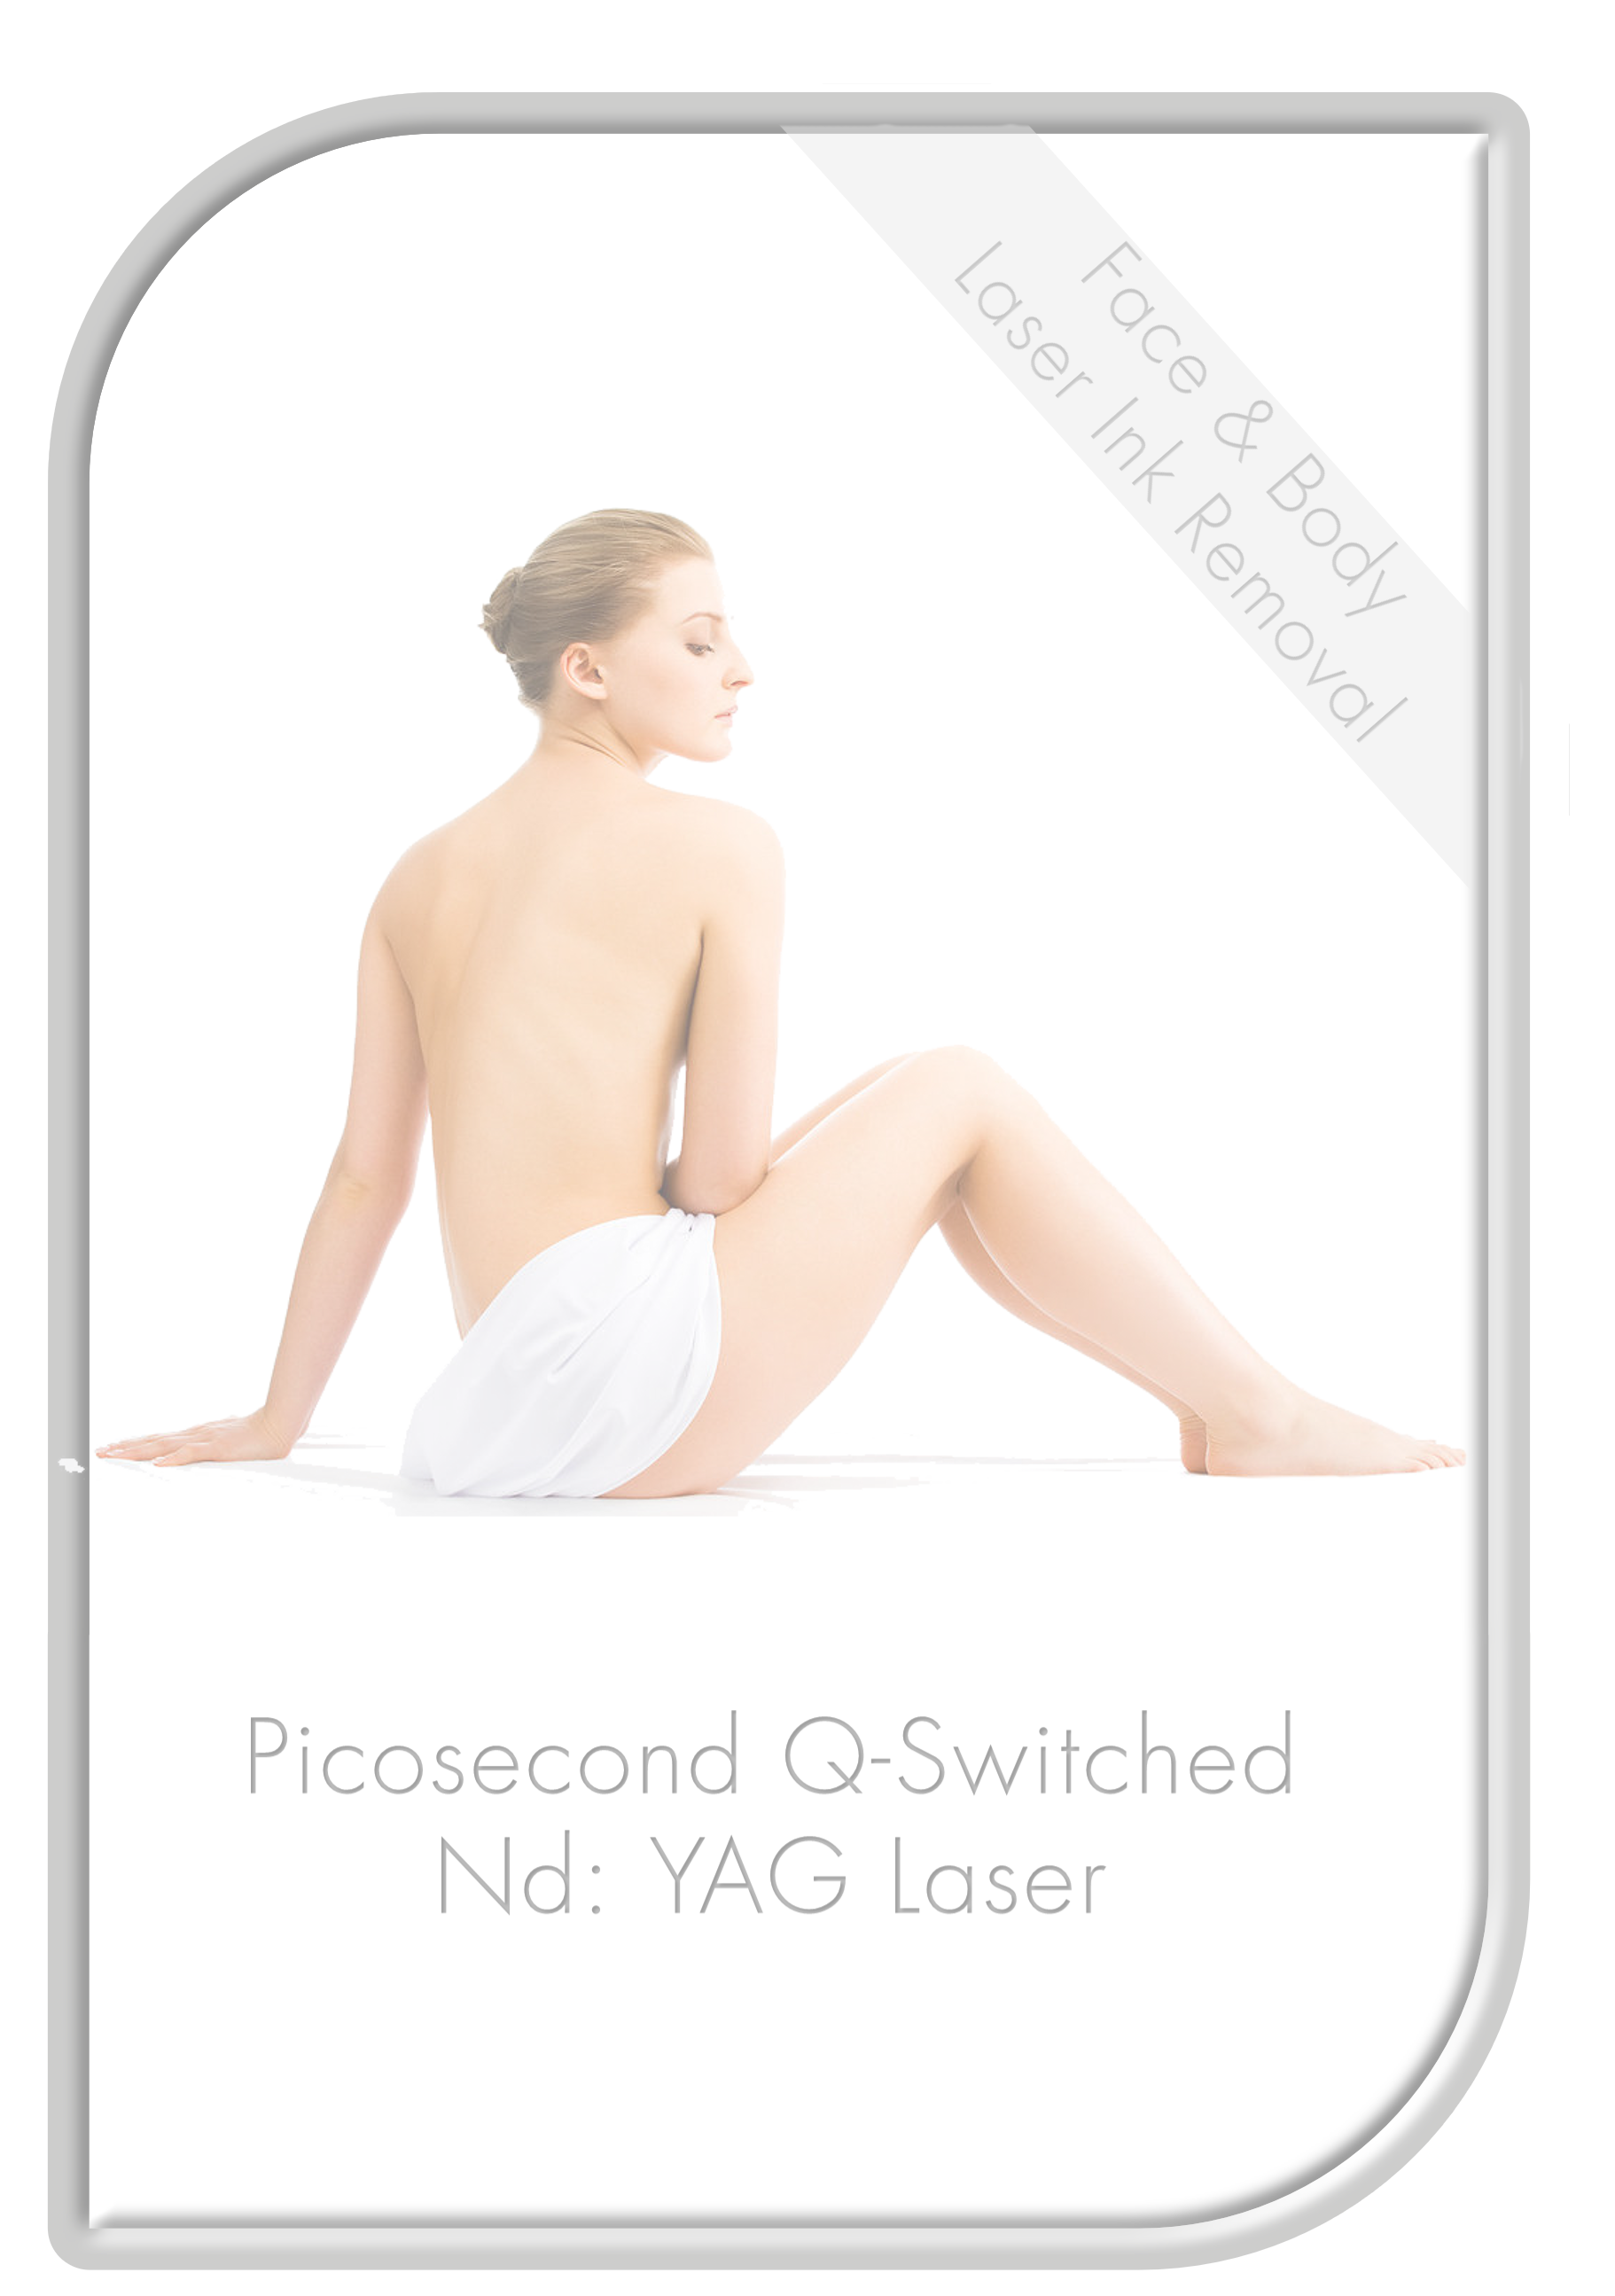 Picosecond Q-Switched Laser for Tattoo Removal